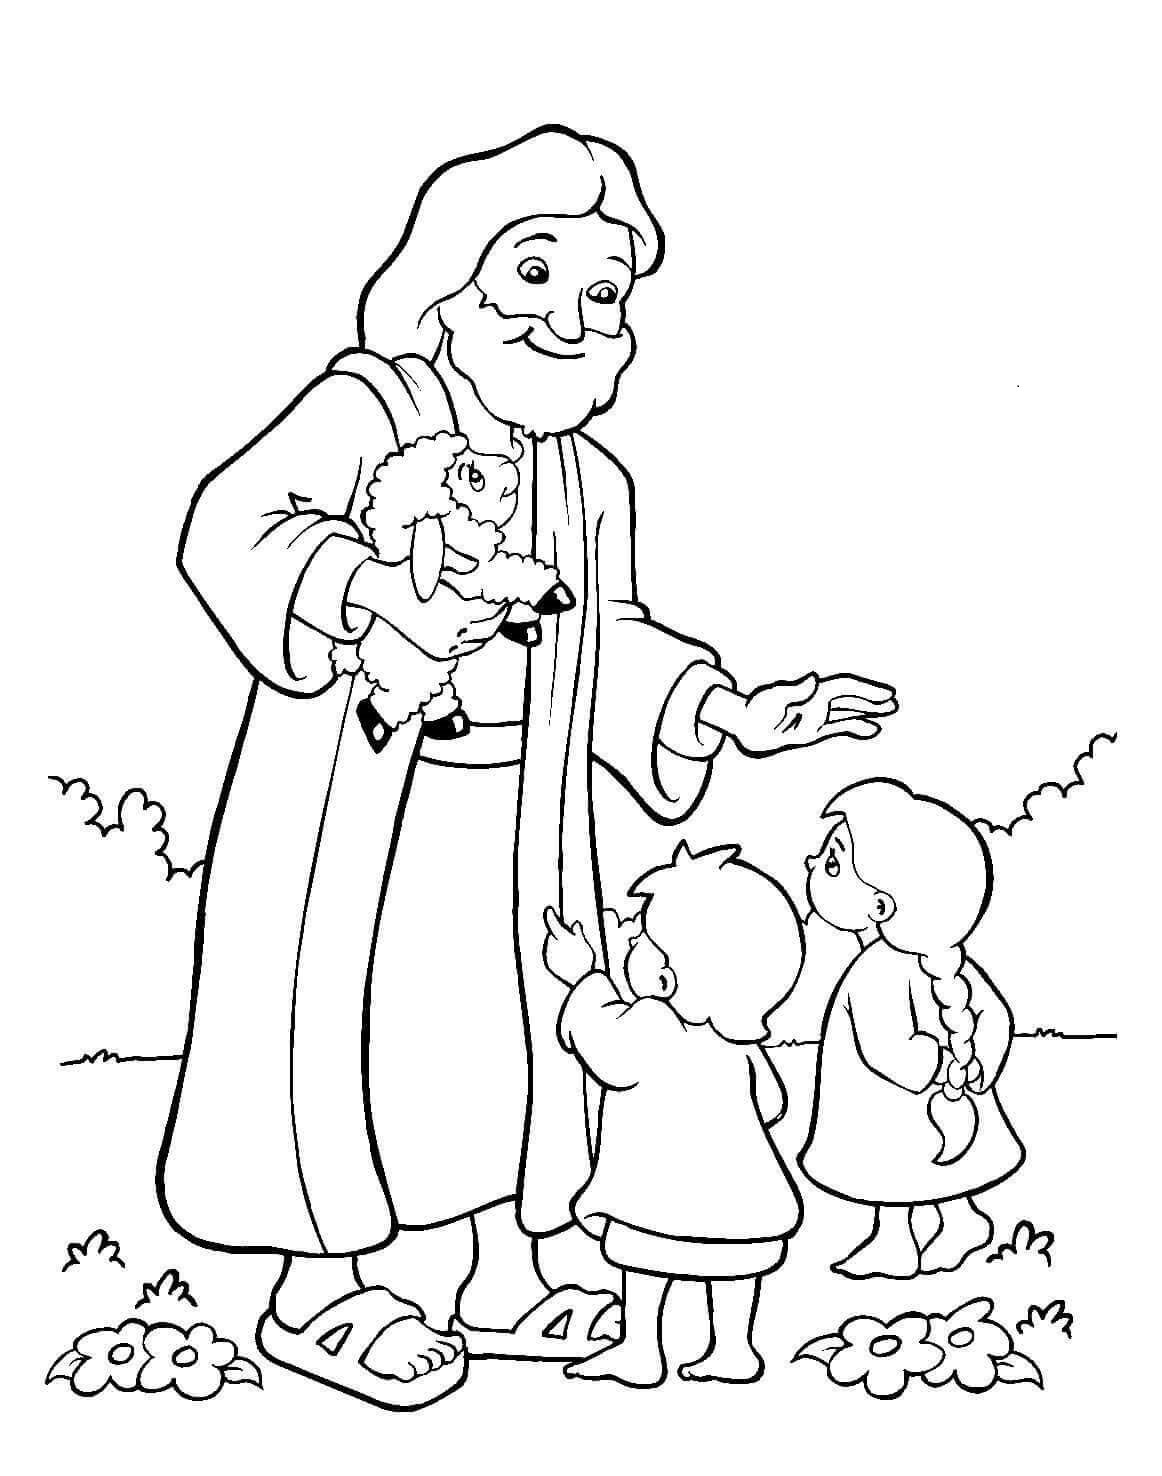 coloring pages for kids jesus free printable jesus coloring pages for kids kids pages jesus coloring for